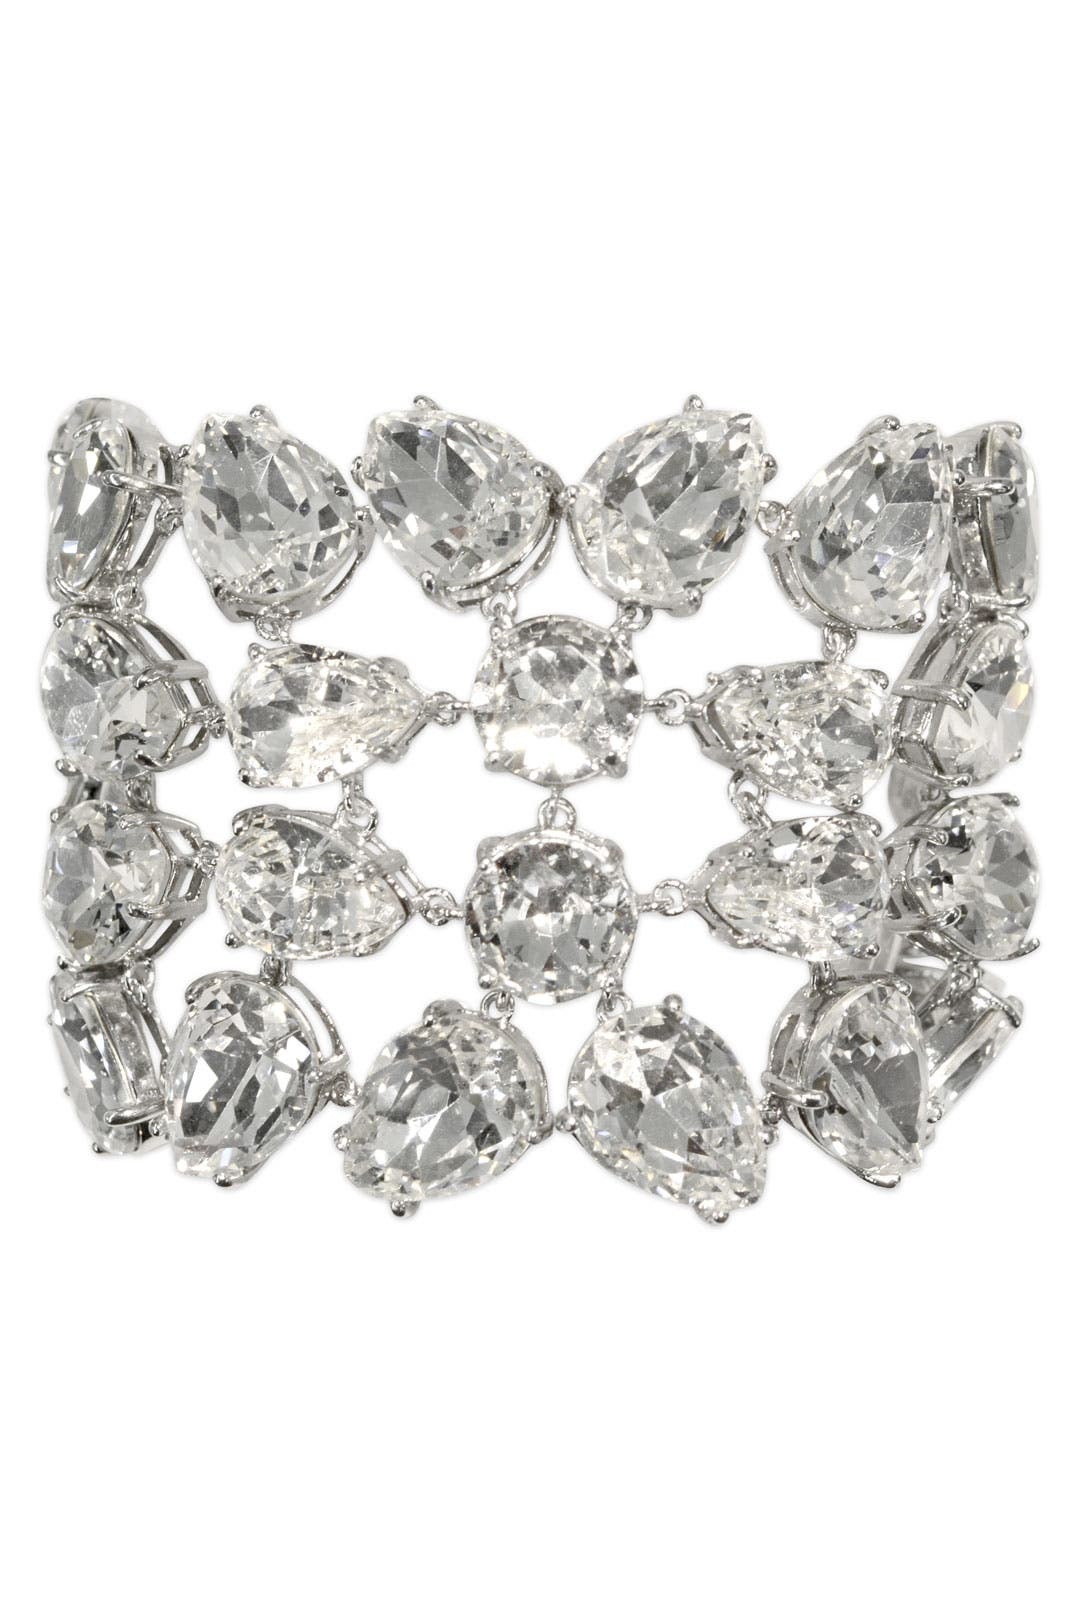 Crystal Petals Bracelet by kate spade new york accessories